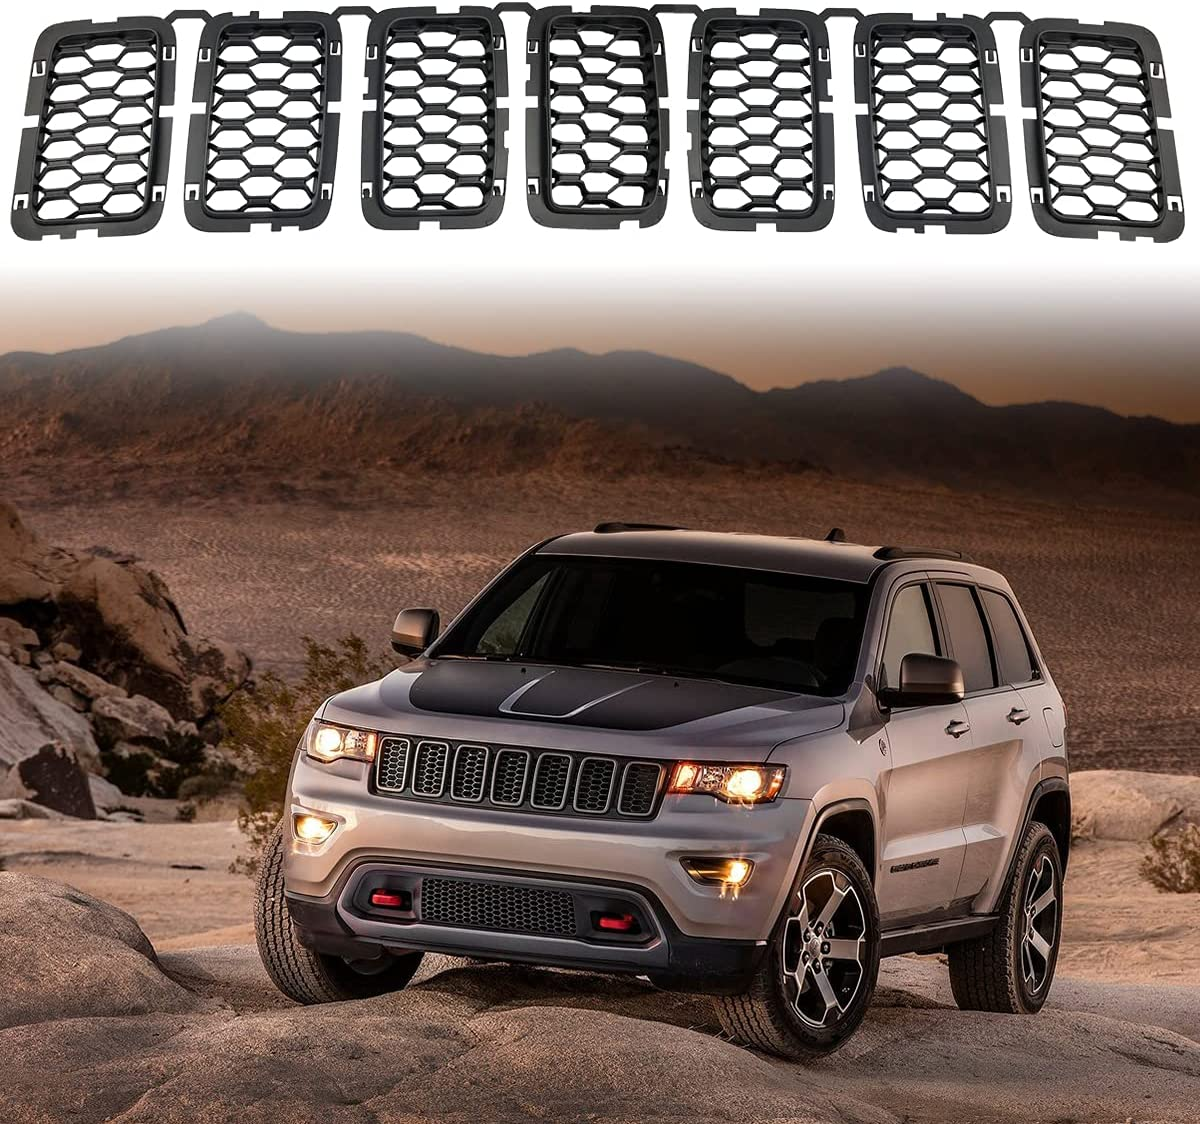 Matte Black Honeycomb Front Grill Max 89% OFF 2017 Fits Inserts Mesh Quality inspection Grille